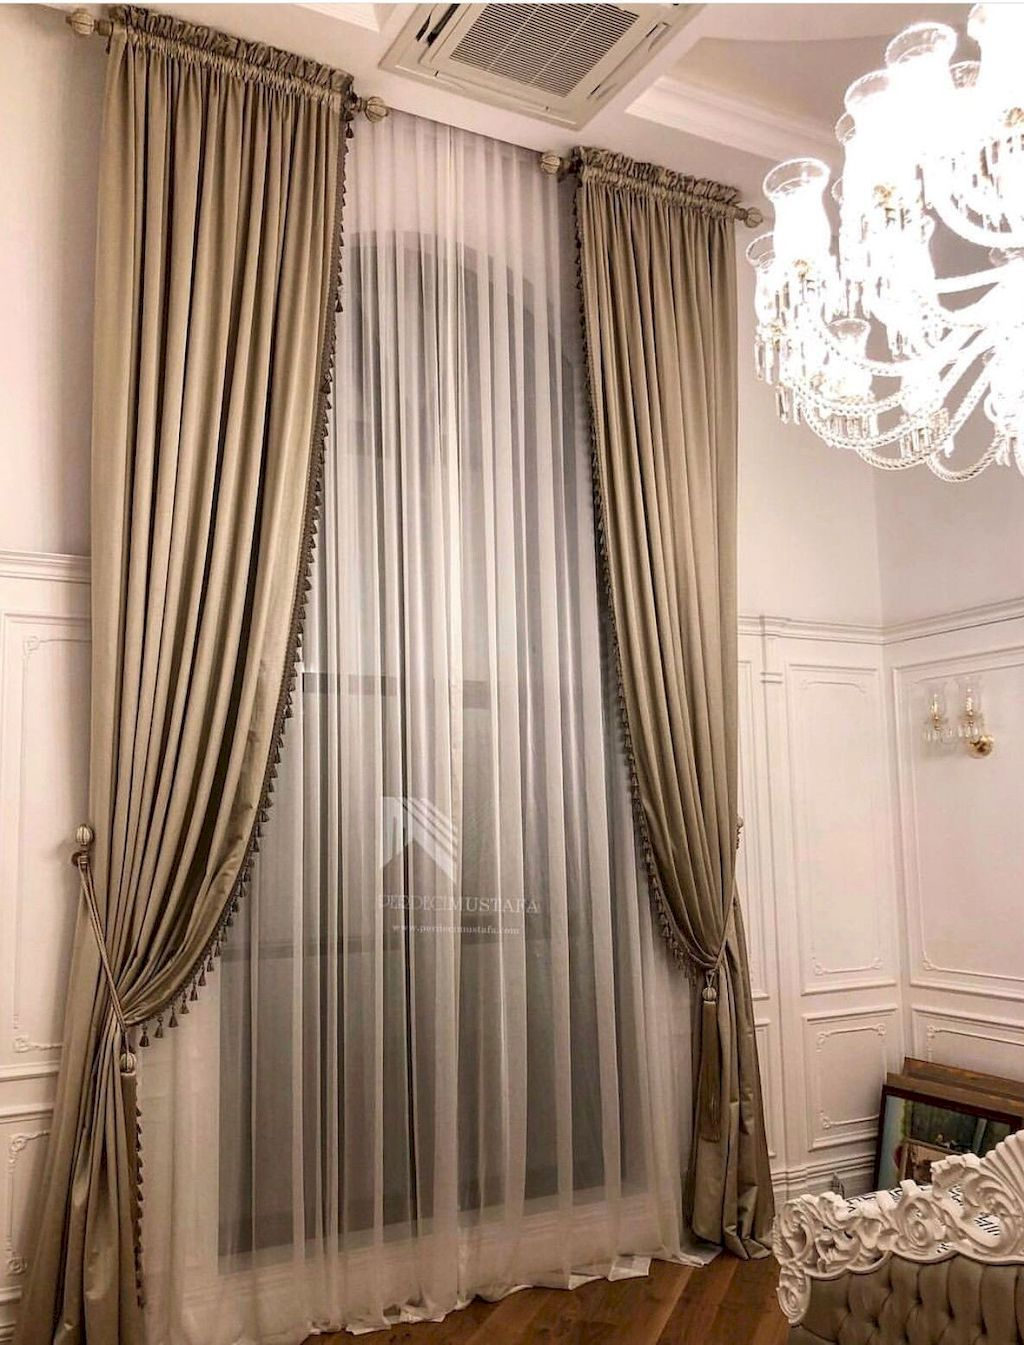 Superb Trendy Design Curtains Can Change Your Residence